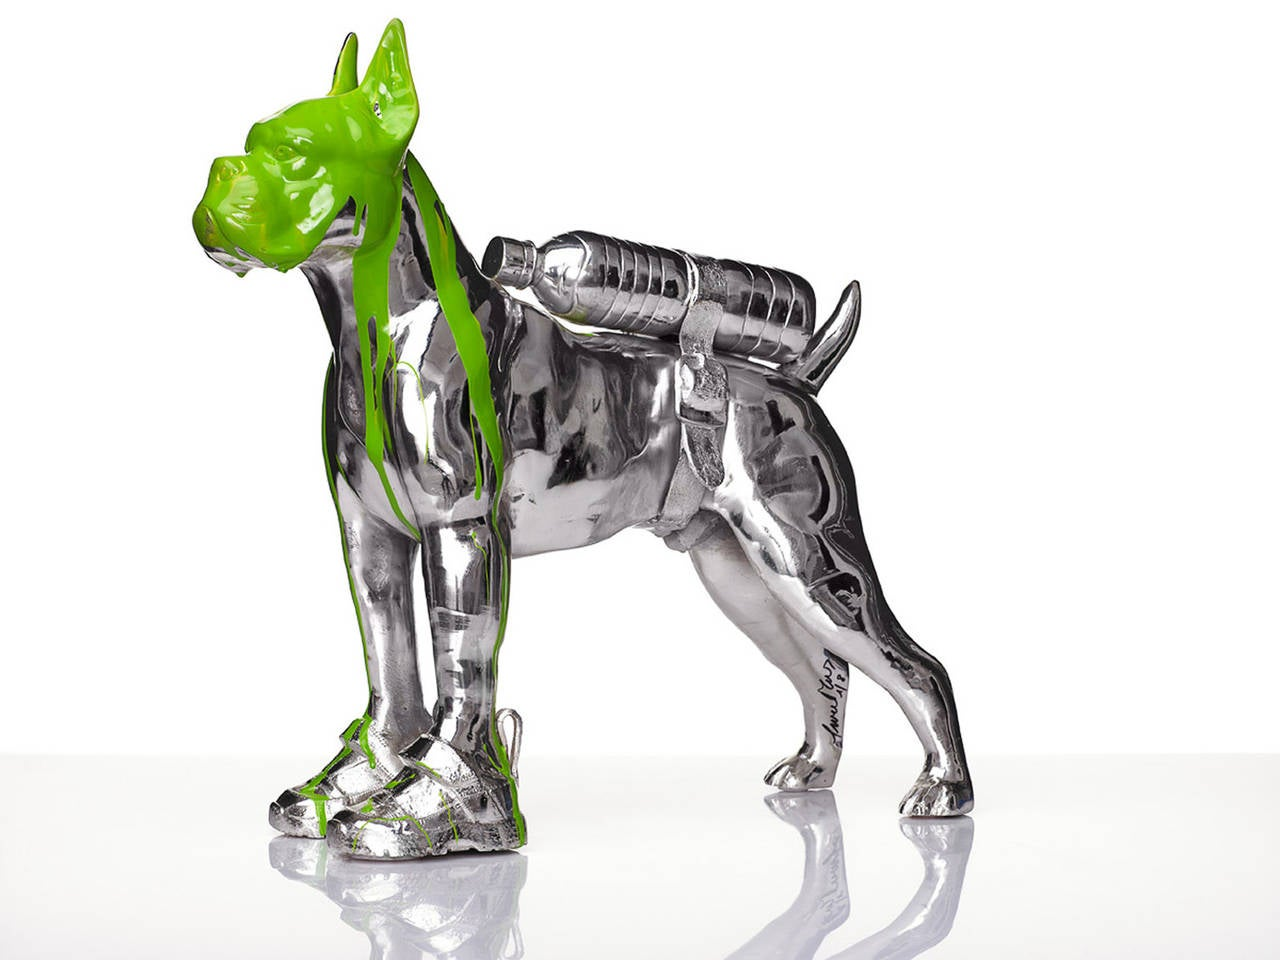 Cloned Bulldog with pet bottle. - Sculpture by William Sweetlove